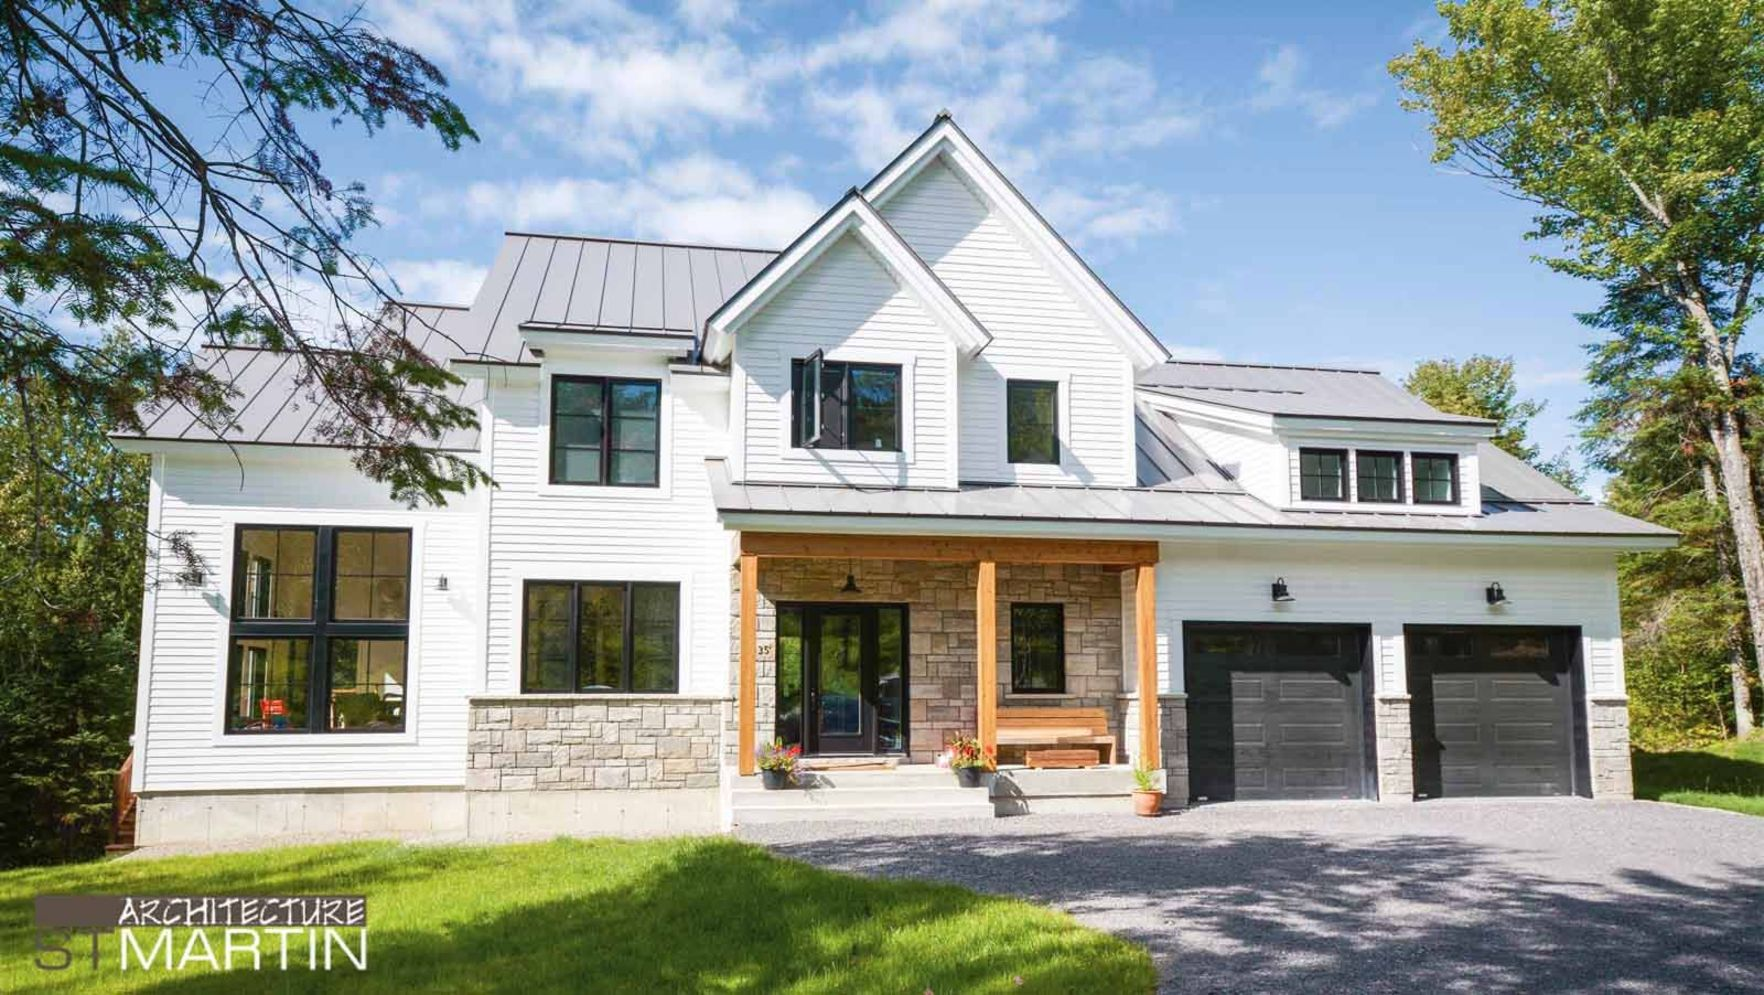 Countryside house with modern Farmhouse exterior design bringing up the traditional style in new classy look Image 4